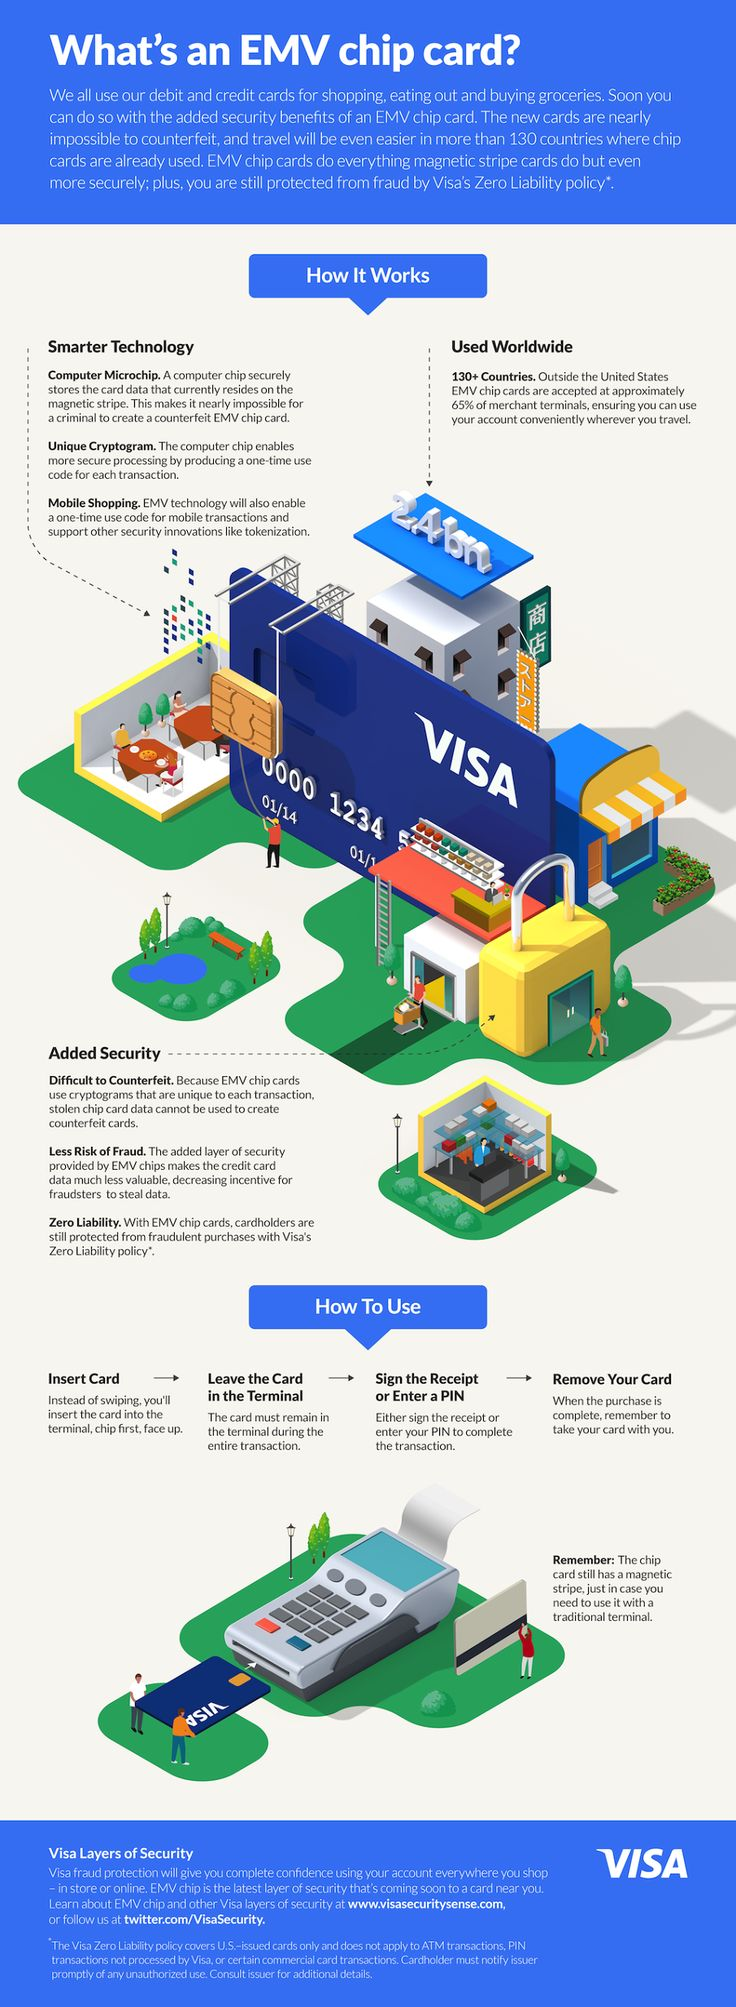 VISA - EMV chip infographic - Jing Zhang illustration